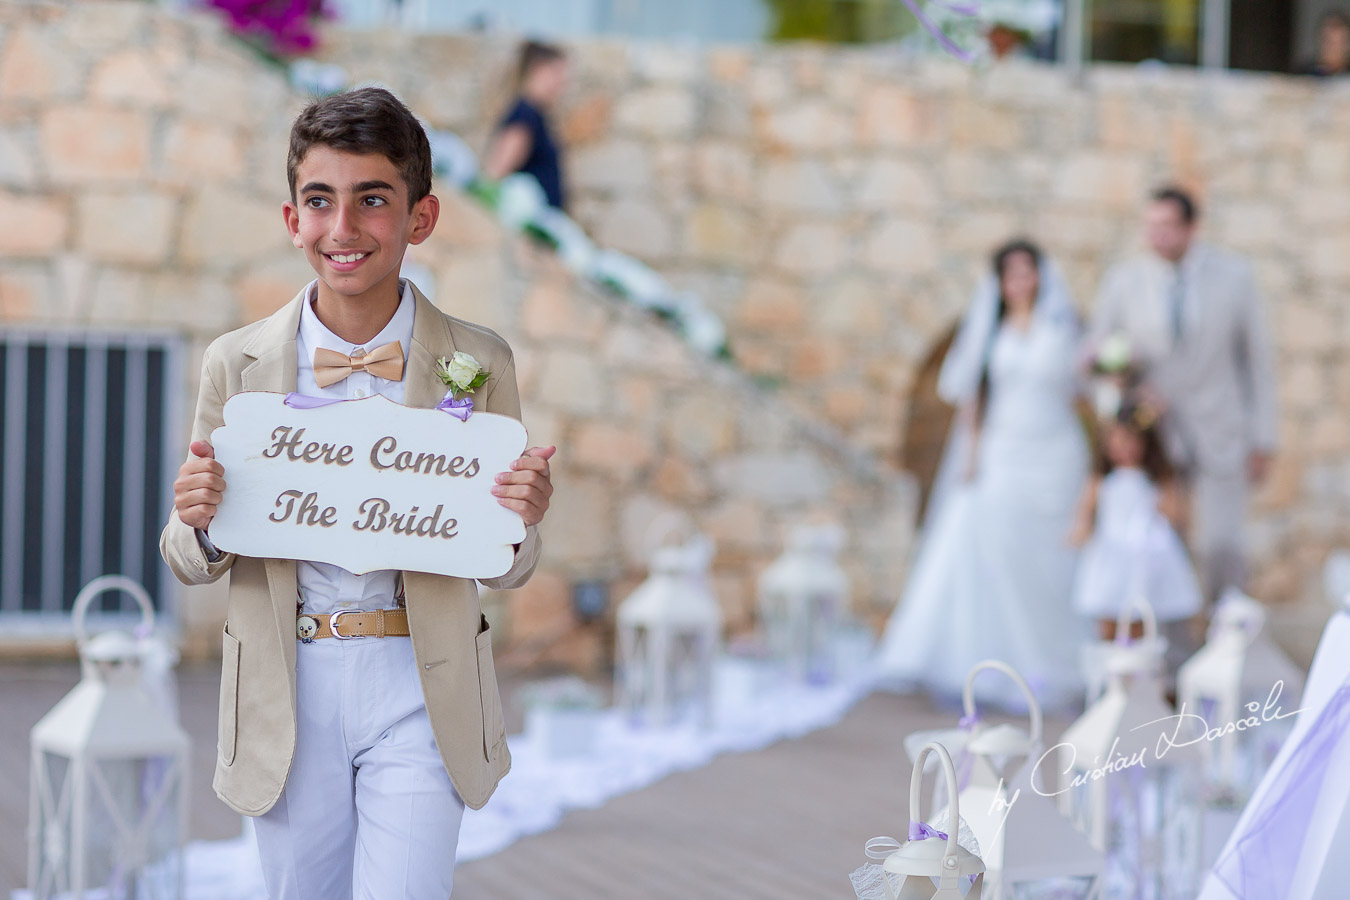 Unique wedding moments captured at Royal Apollonia Hotel in Limassol, Cyprus